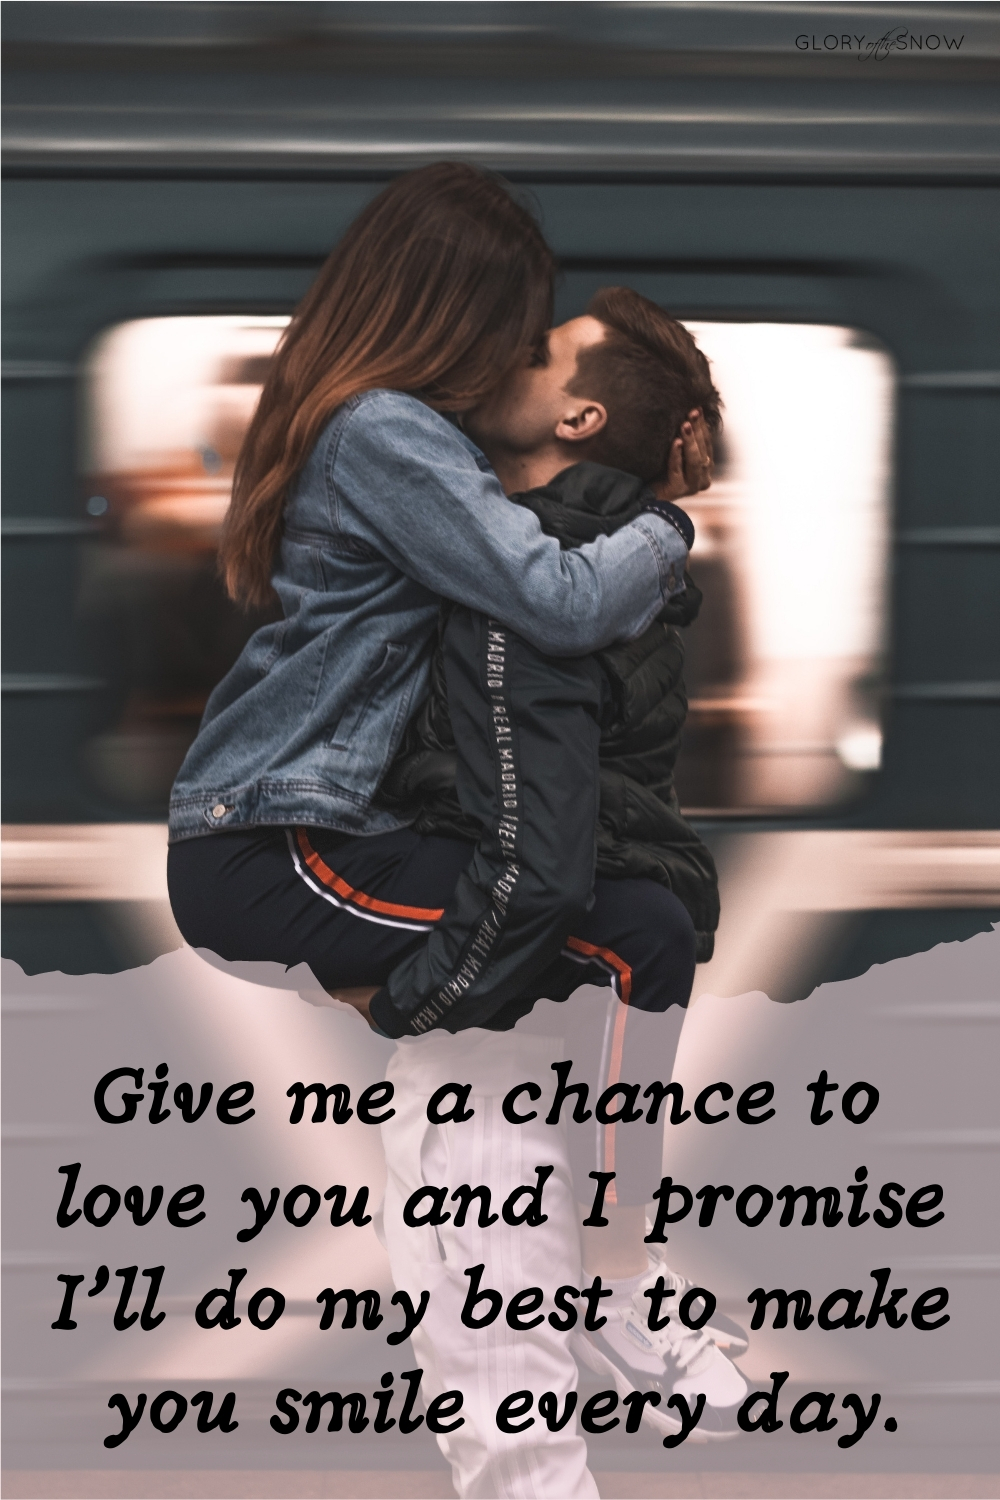 Cute Love Smile Quotes For Her And For Him